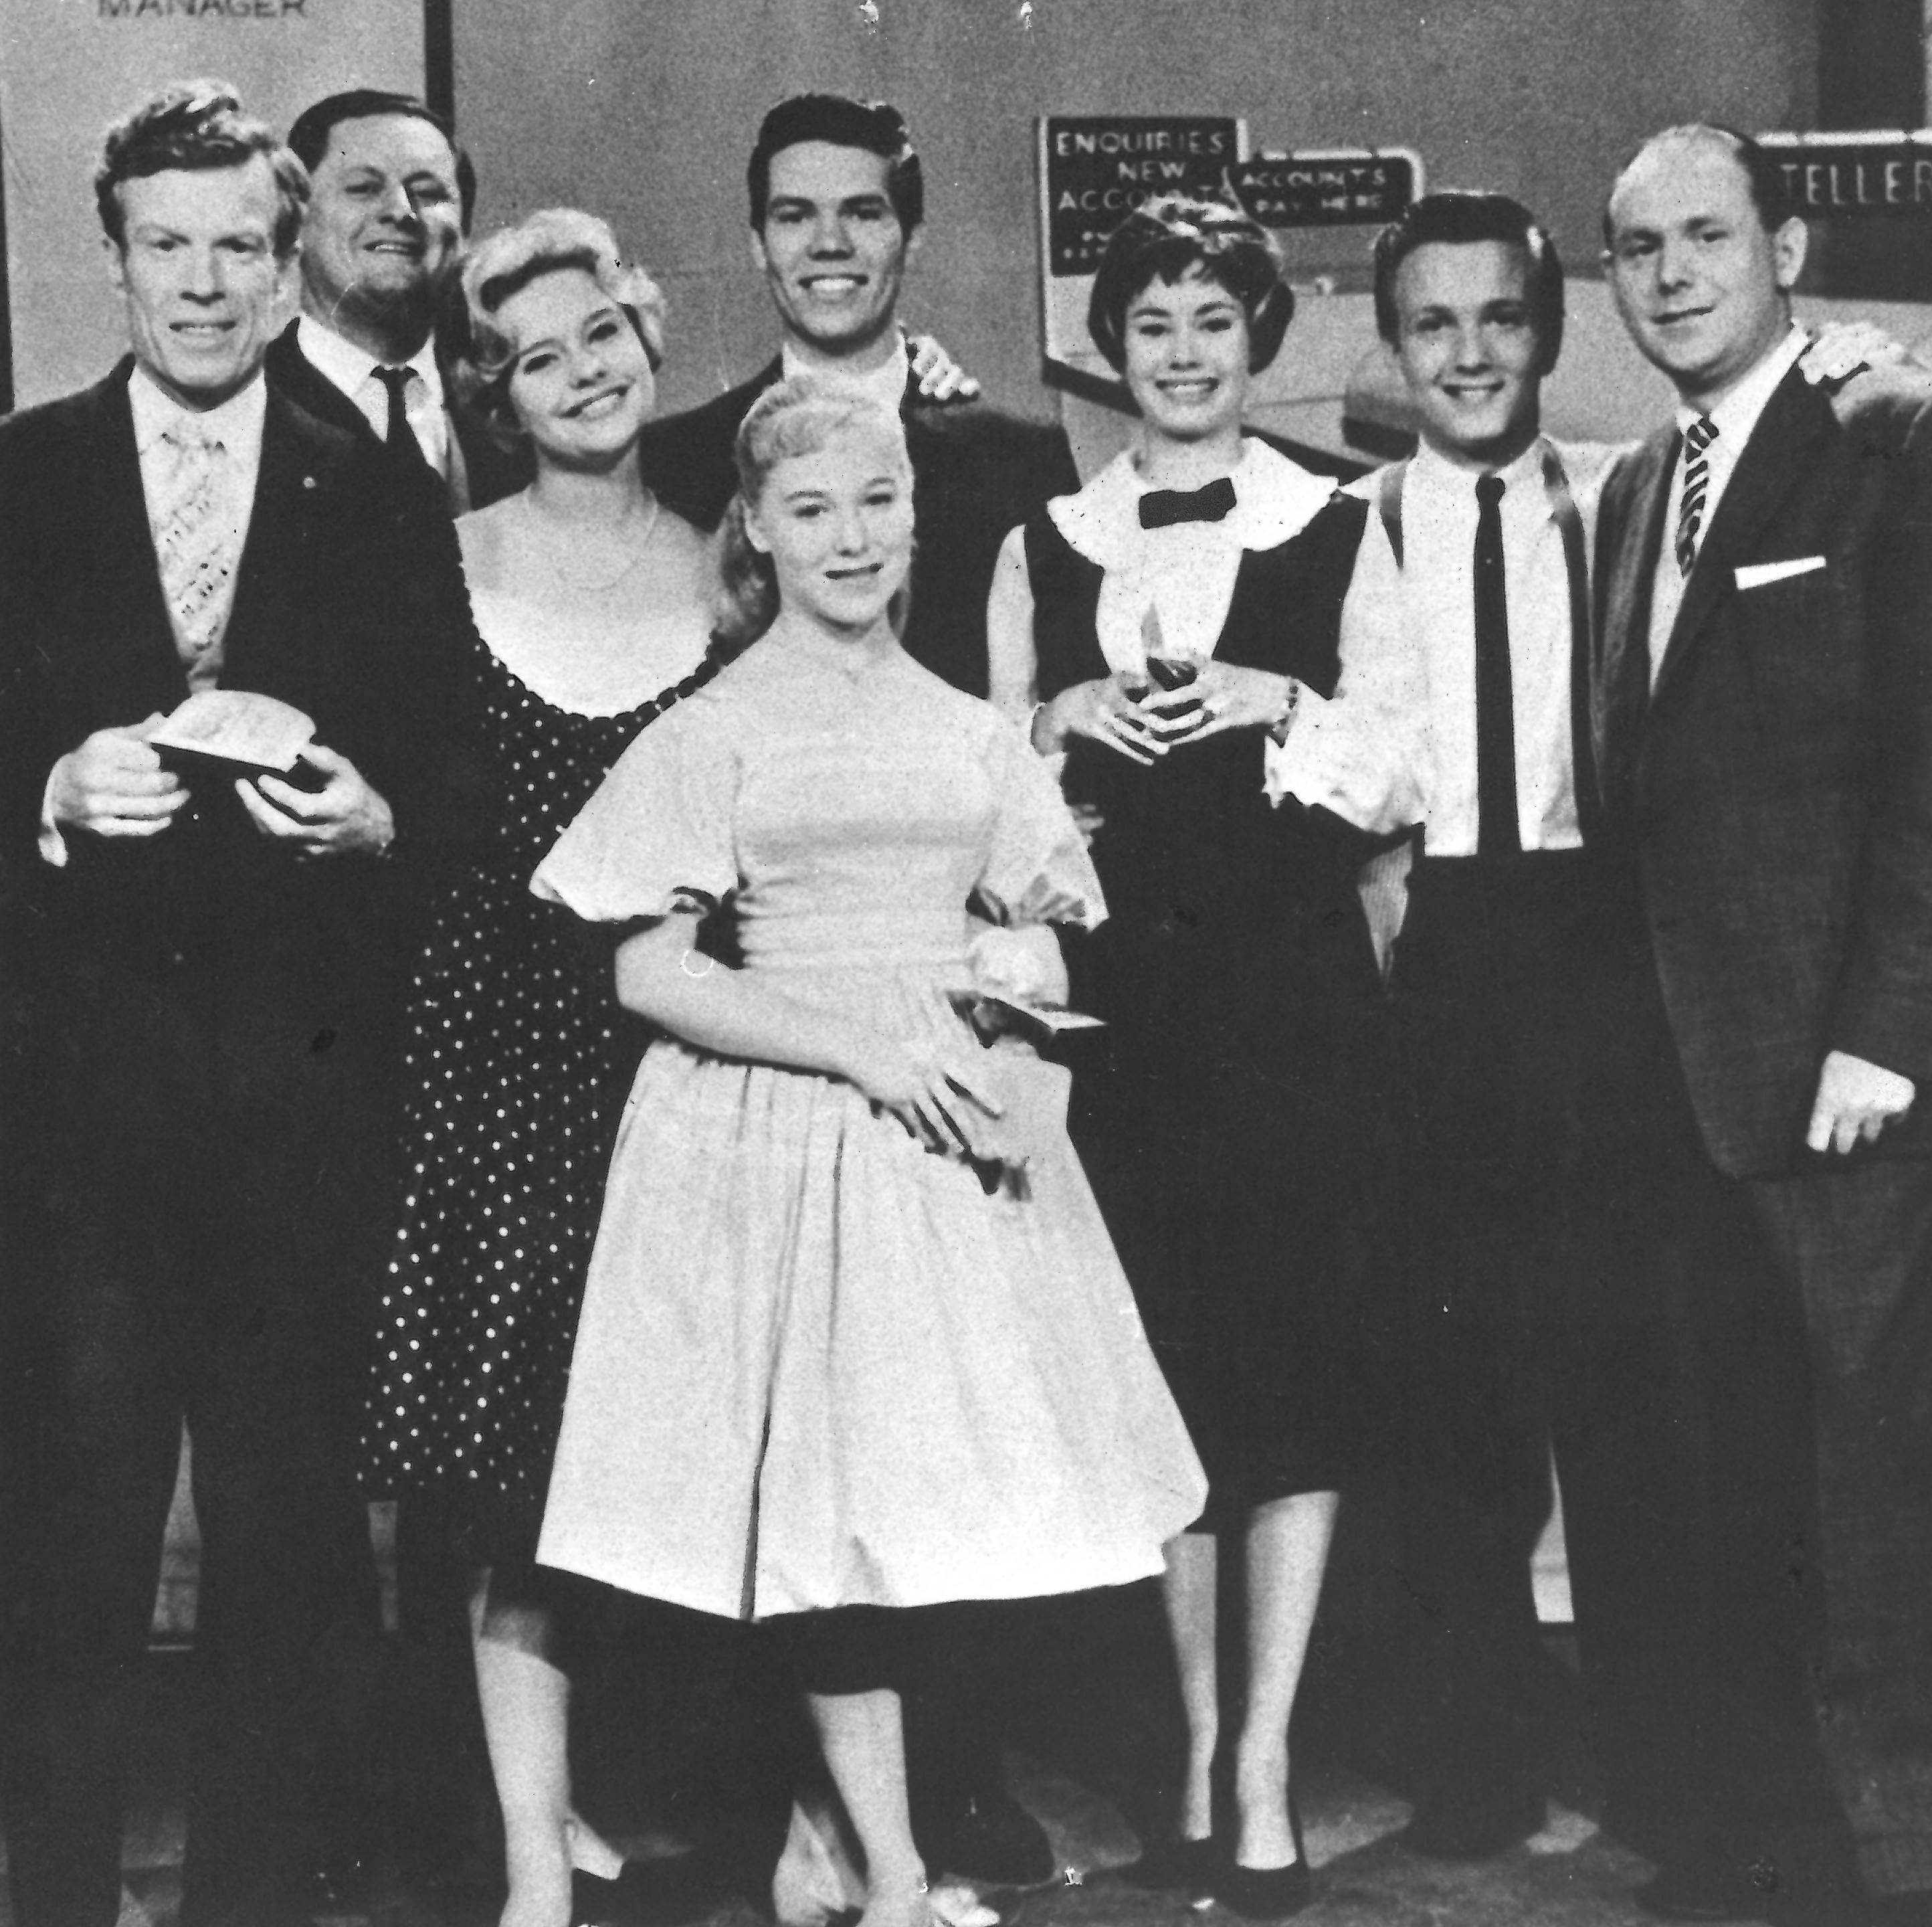 black and white photo of 8 people posing for the camera